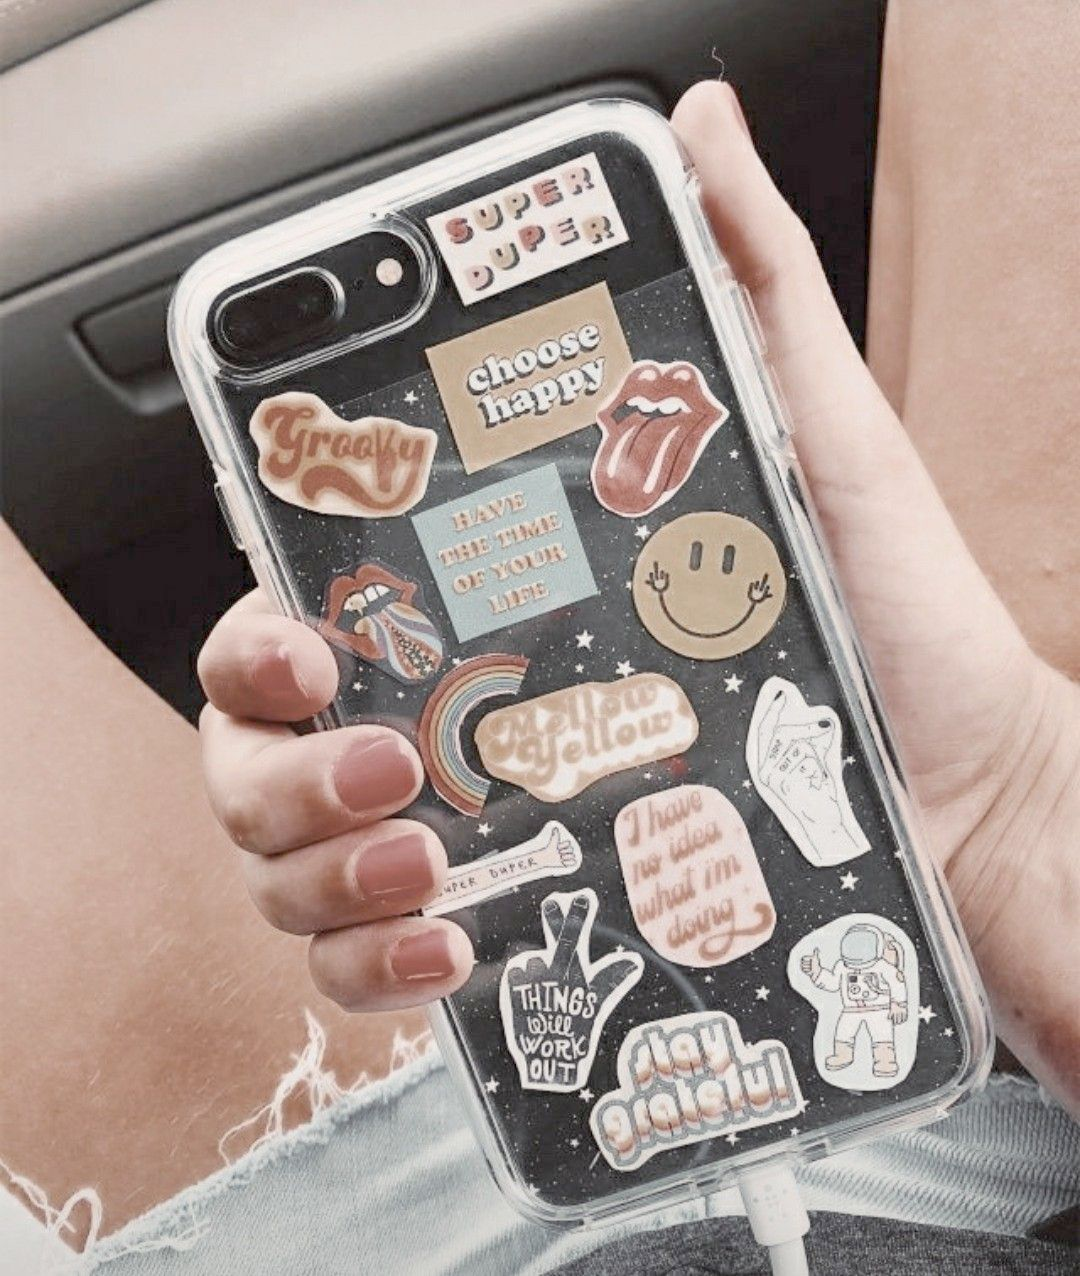 Iphone Xr Cases Kmart Case Iphone 8 Plus Minnie Some Gadgets And Gizmos Difference Either Tech Gadgets Tre Tumblr Phone Case Diy Phone Case Iphone Phone Cases